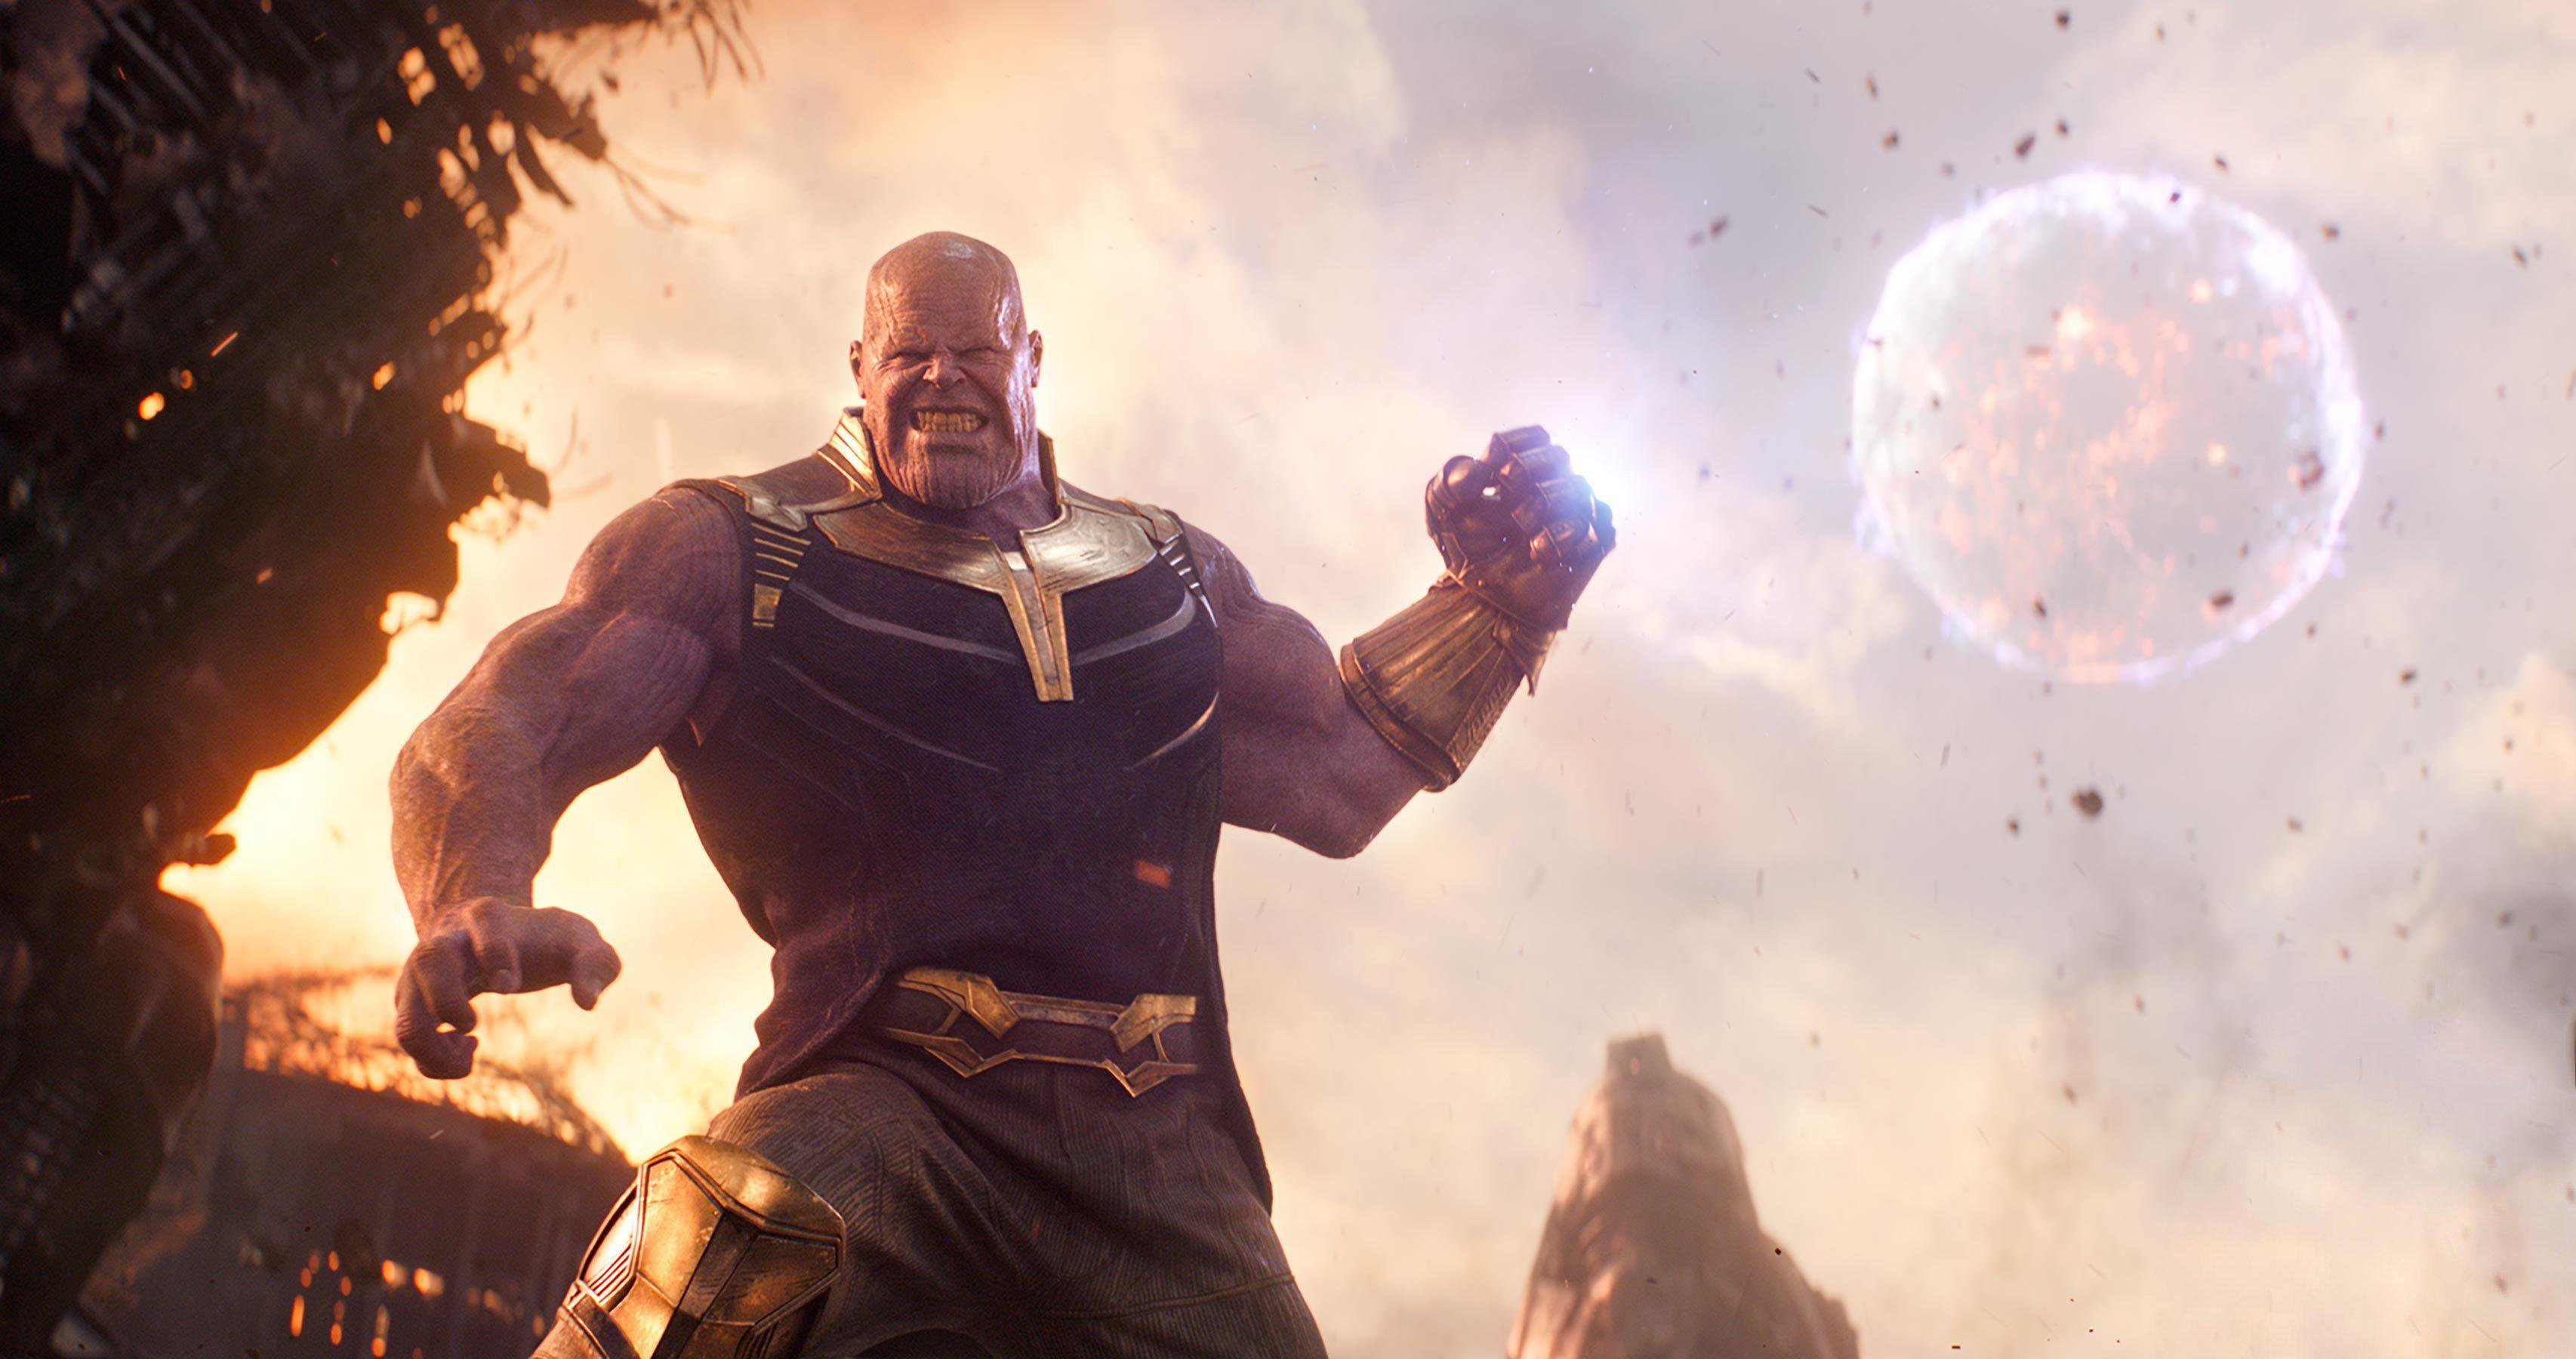 Avengers Infinity Thanos 4k Widescreen Desktop Wallpaper 922 3412x1800 Px Pickywallpapers Com